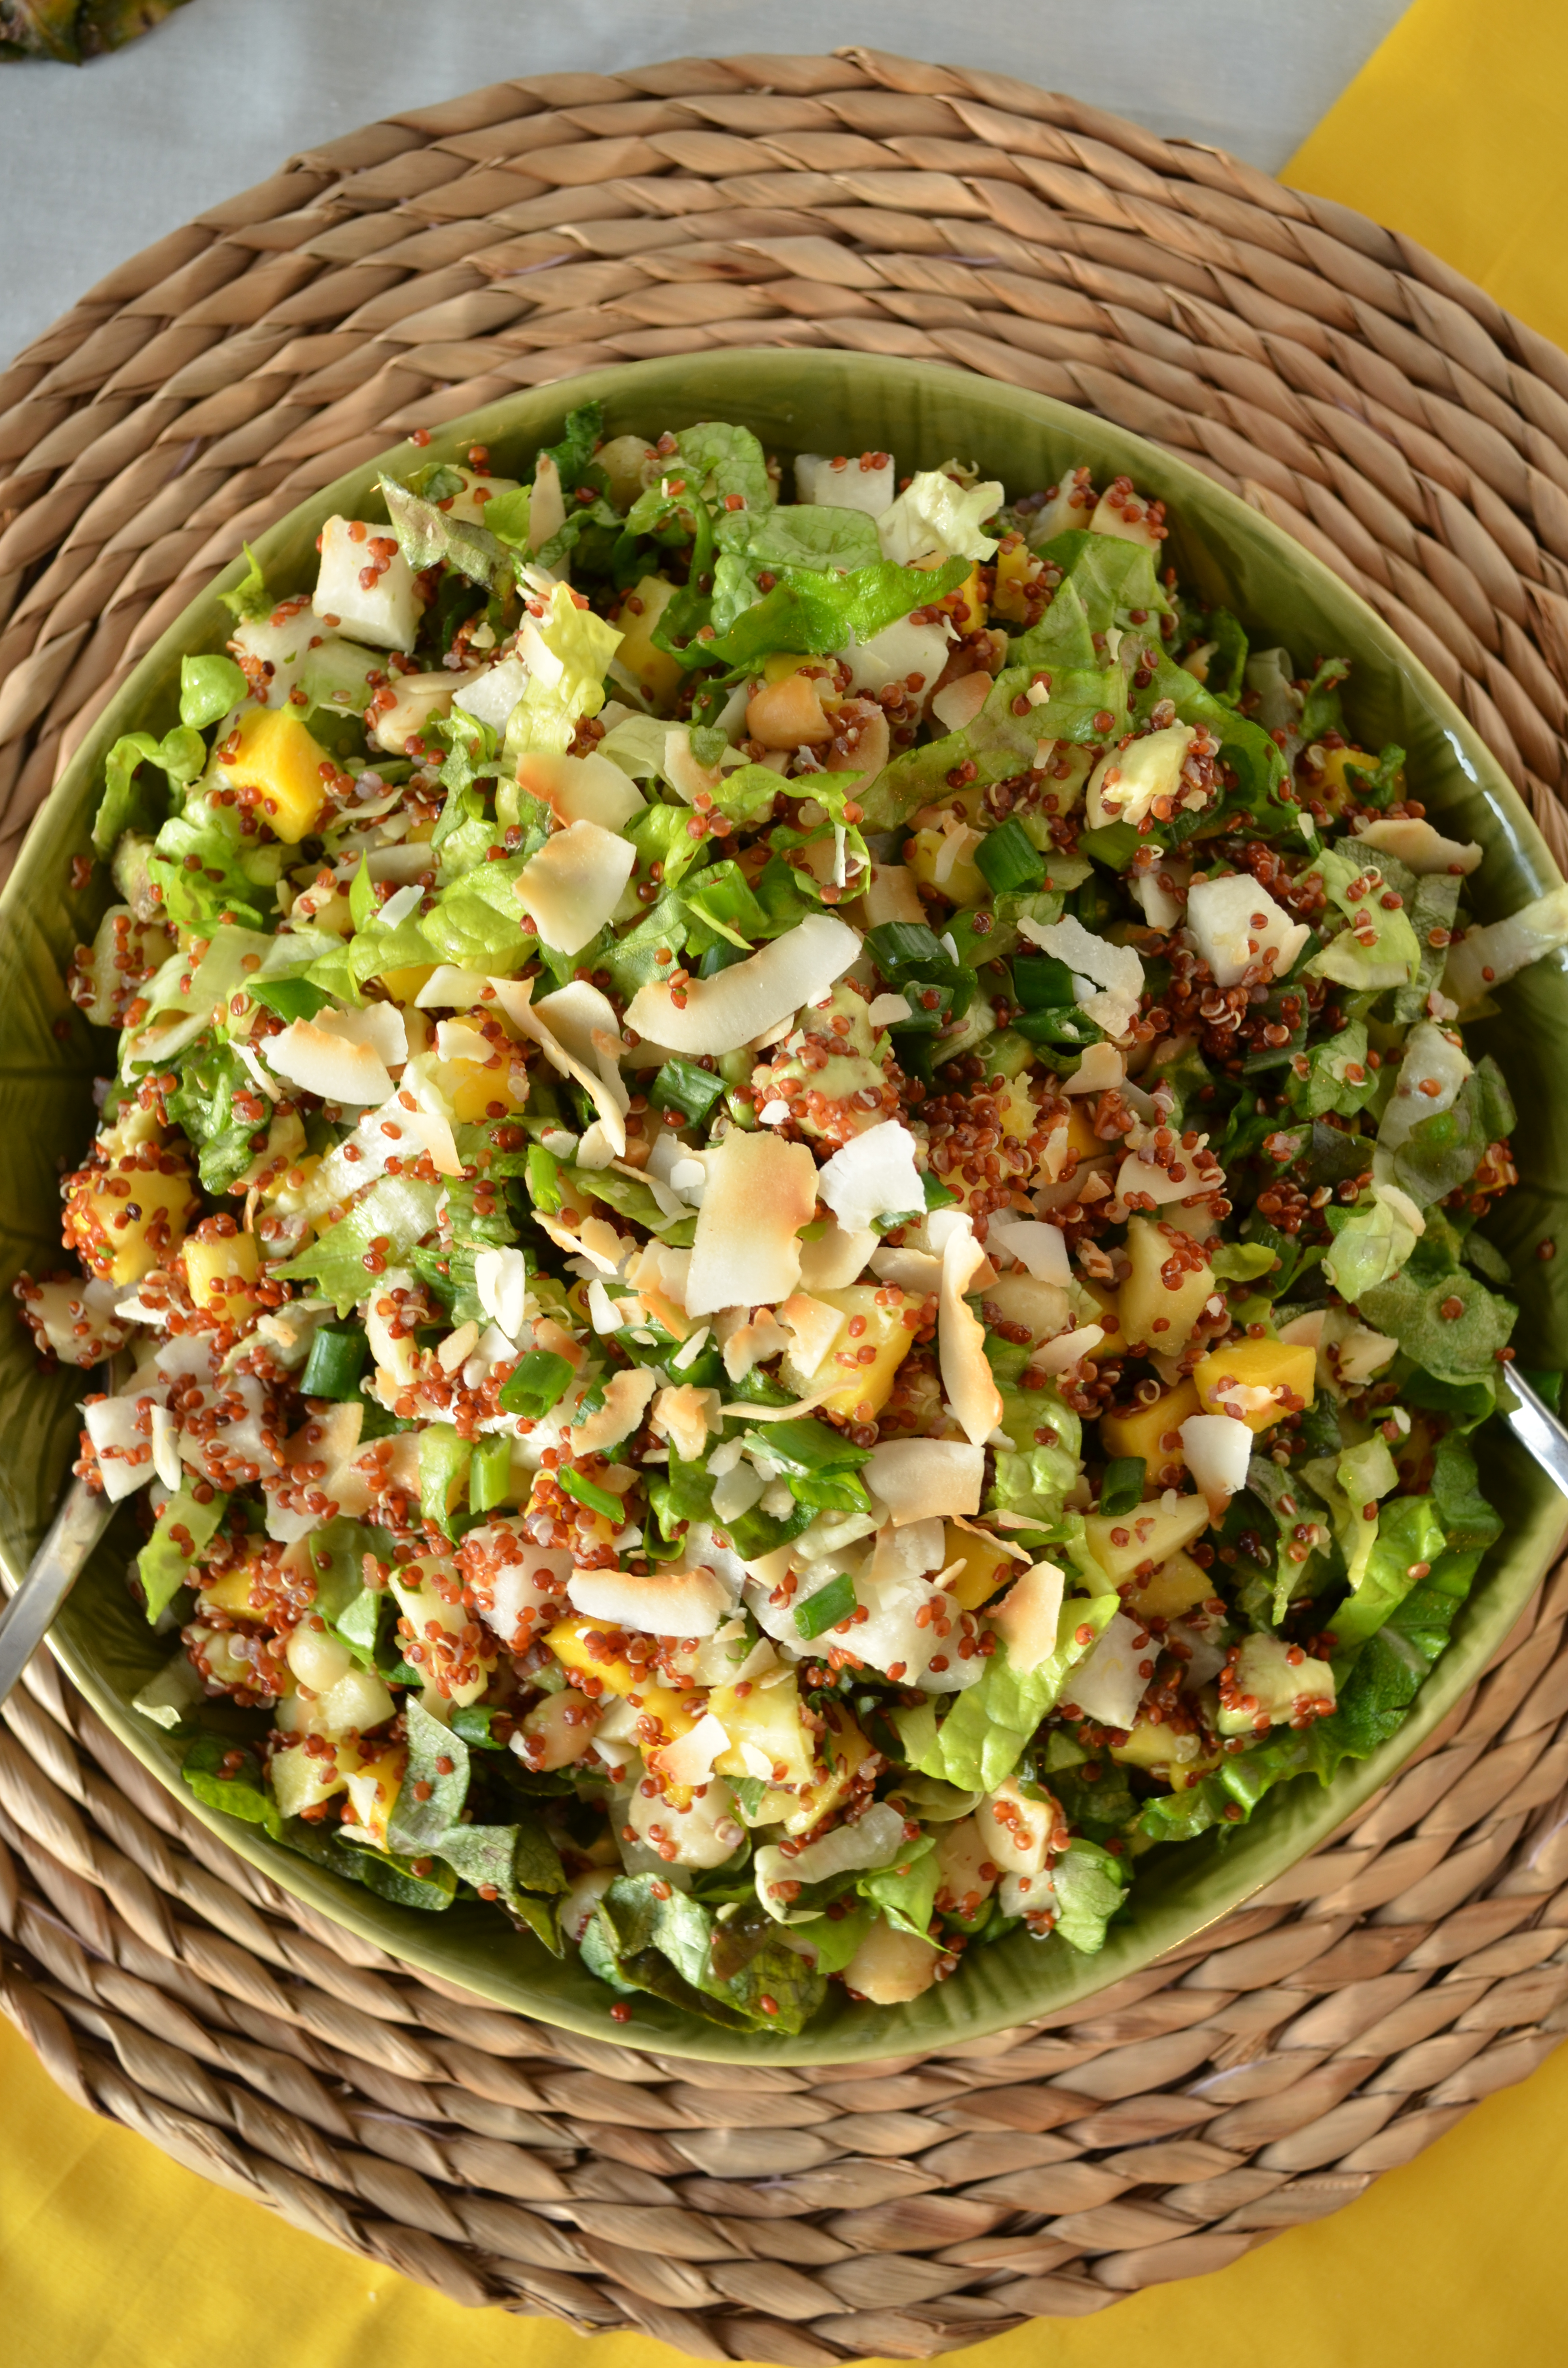 Tropical Chopped Salad with Mango, Pineapple, and Coconut